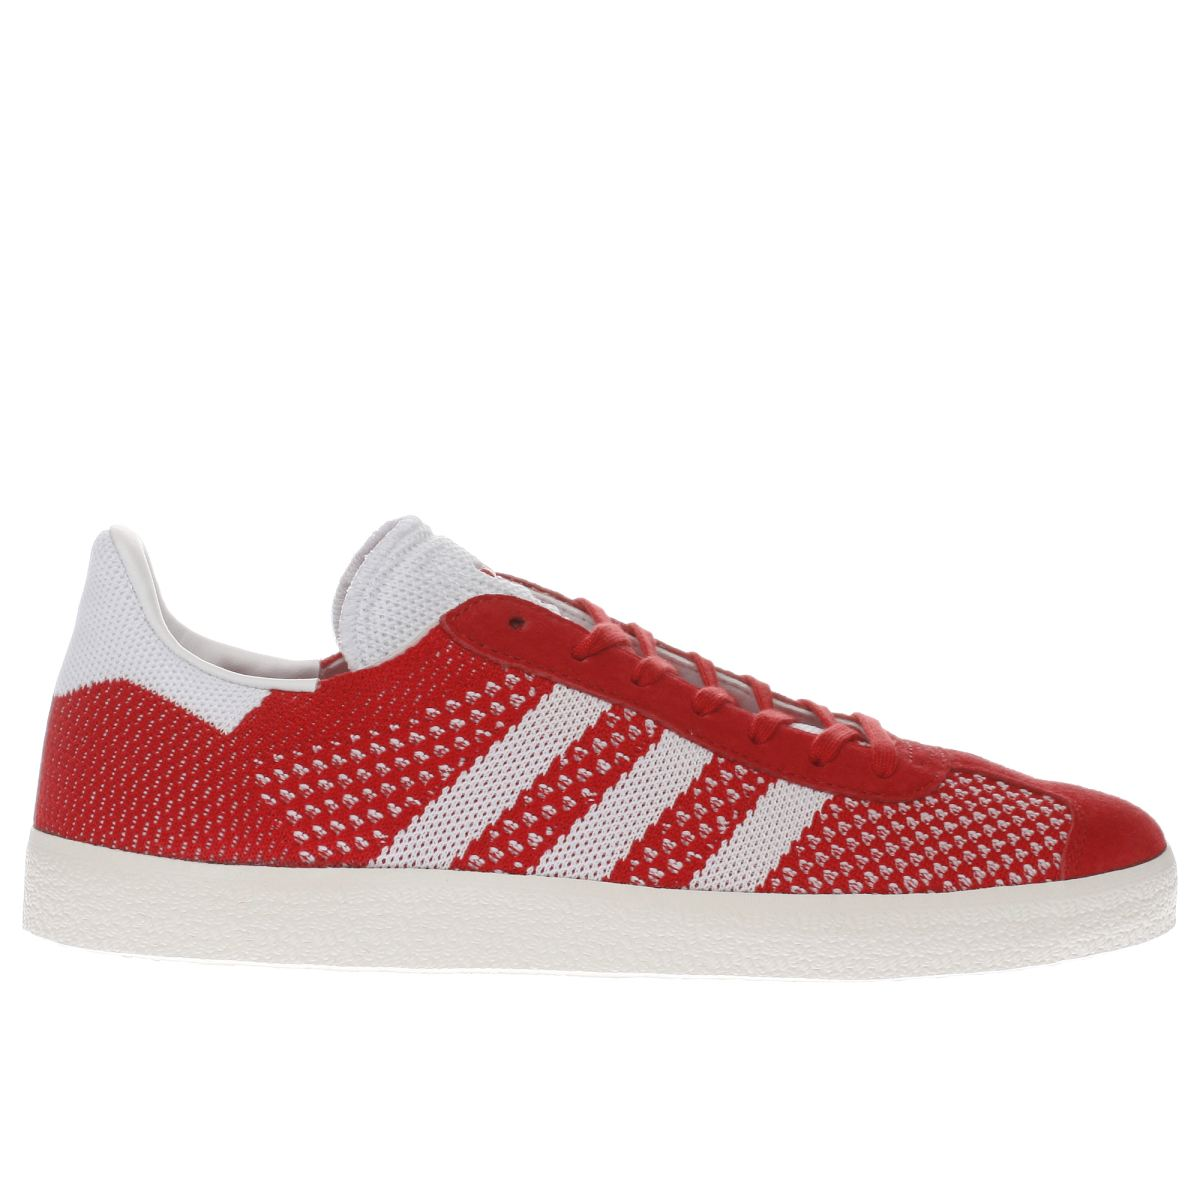 adidas red gazelle primeknit trainers